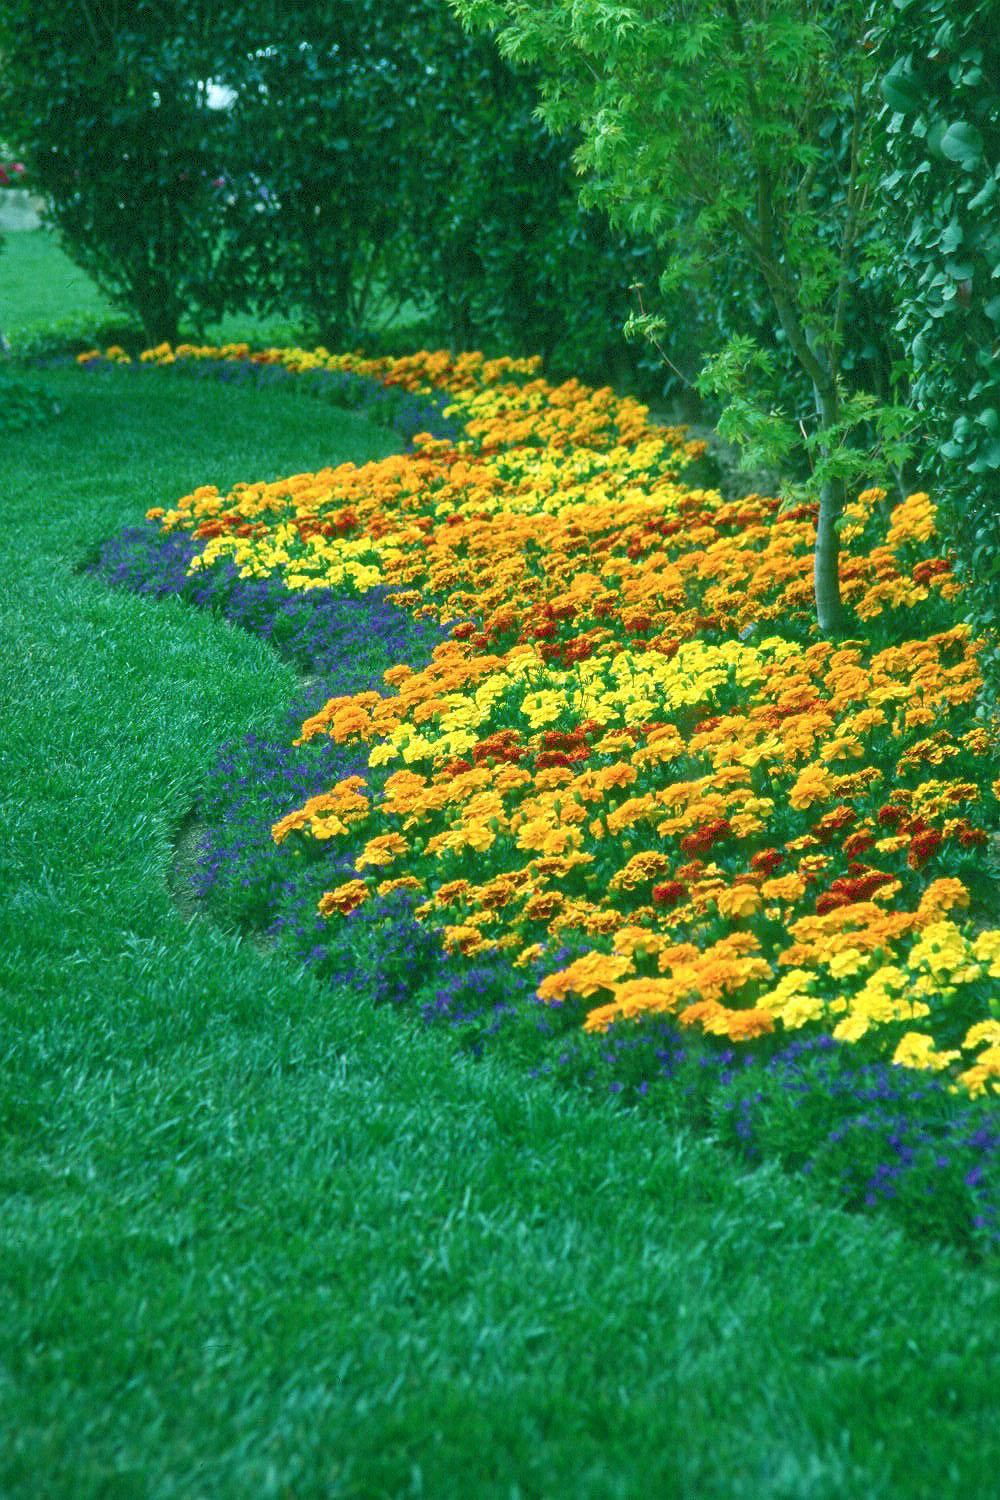 The small-flowered French Marigolds and blue-flowered lobelia create a dazzling landscape display when planted together.